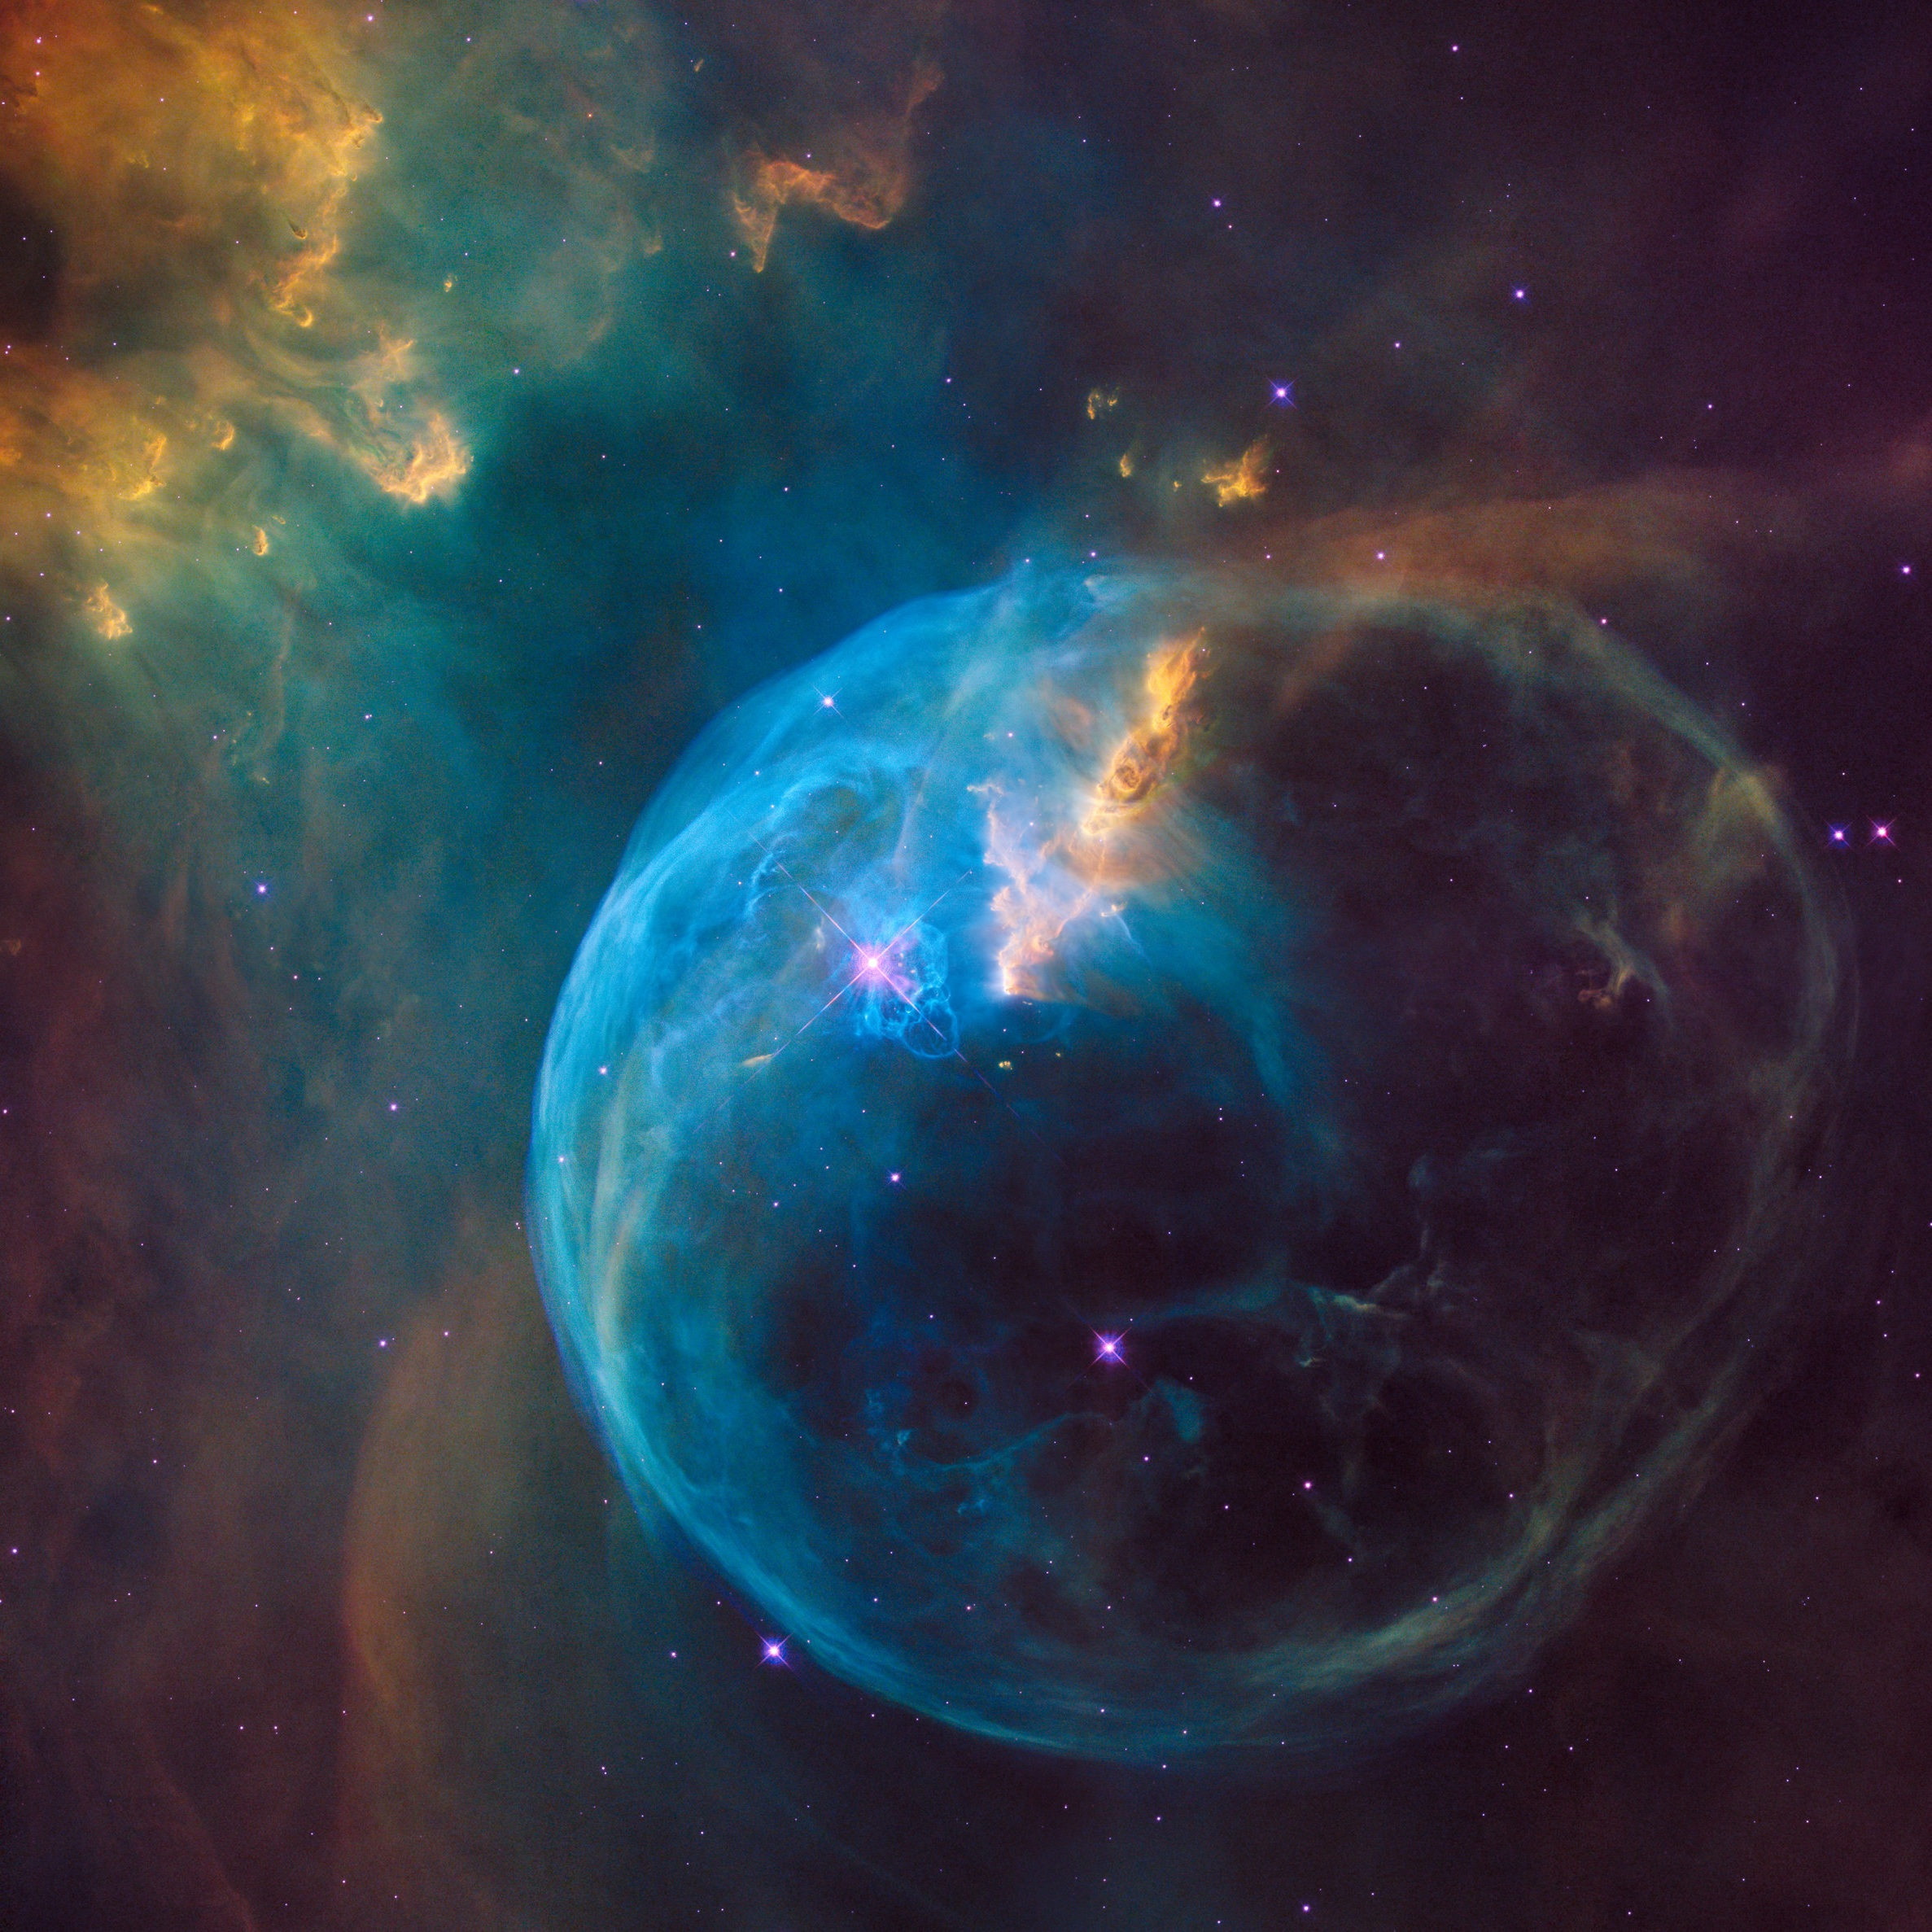 All images credited to NASA Hubble Space Telescope.